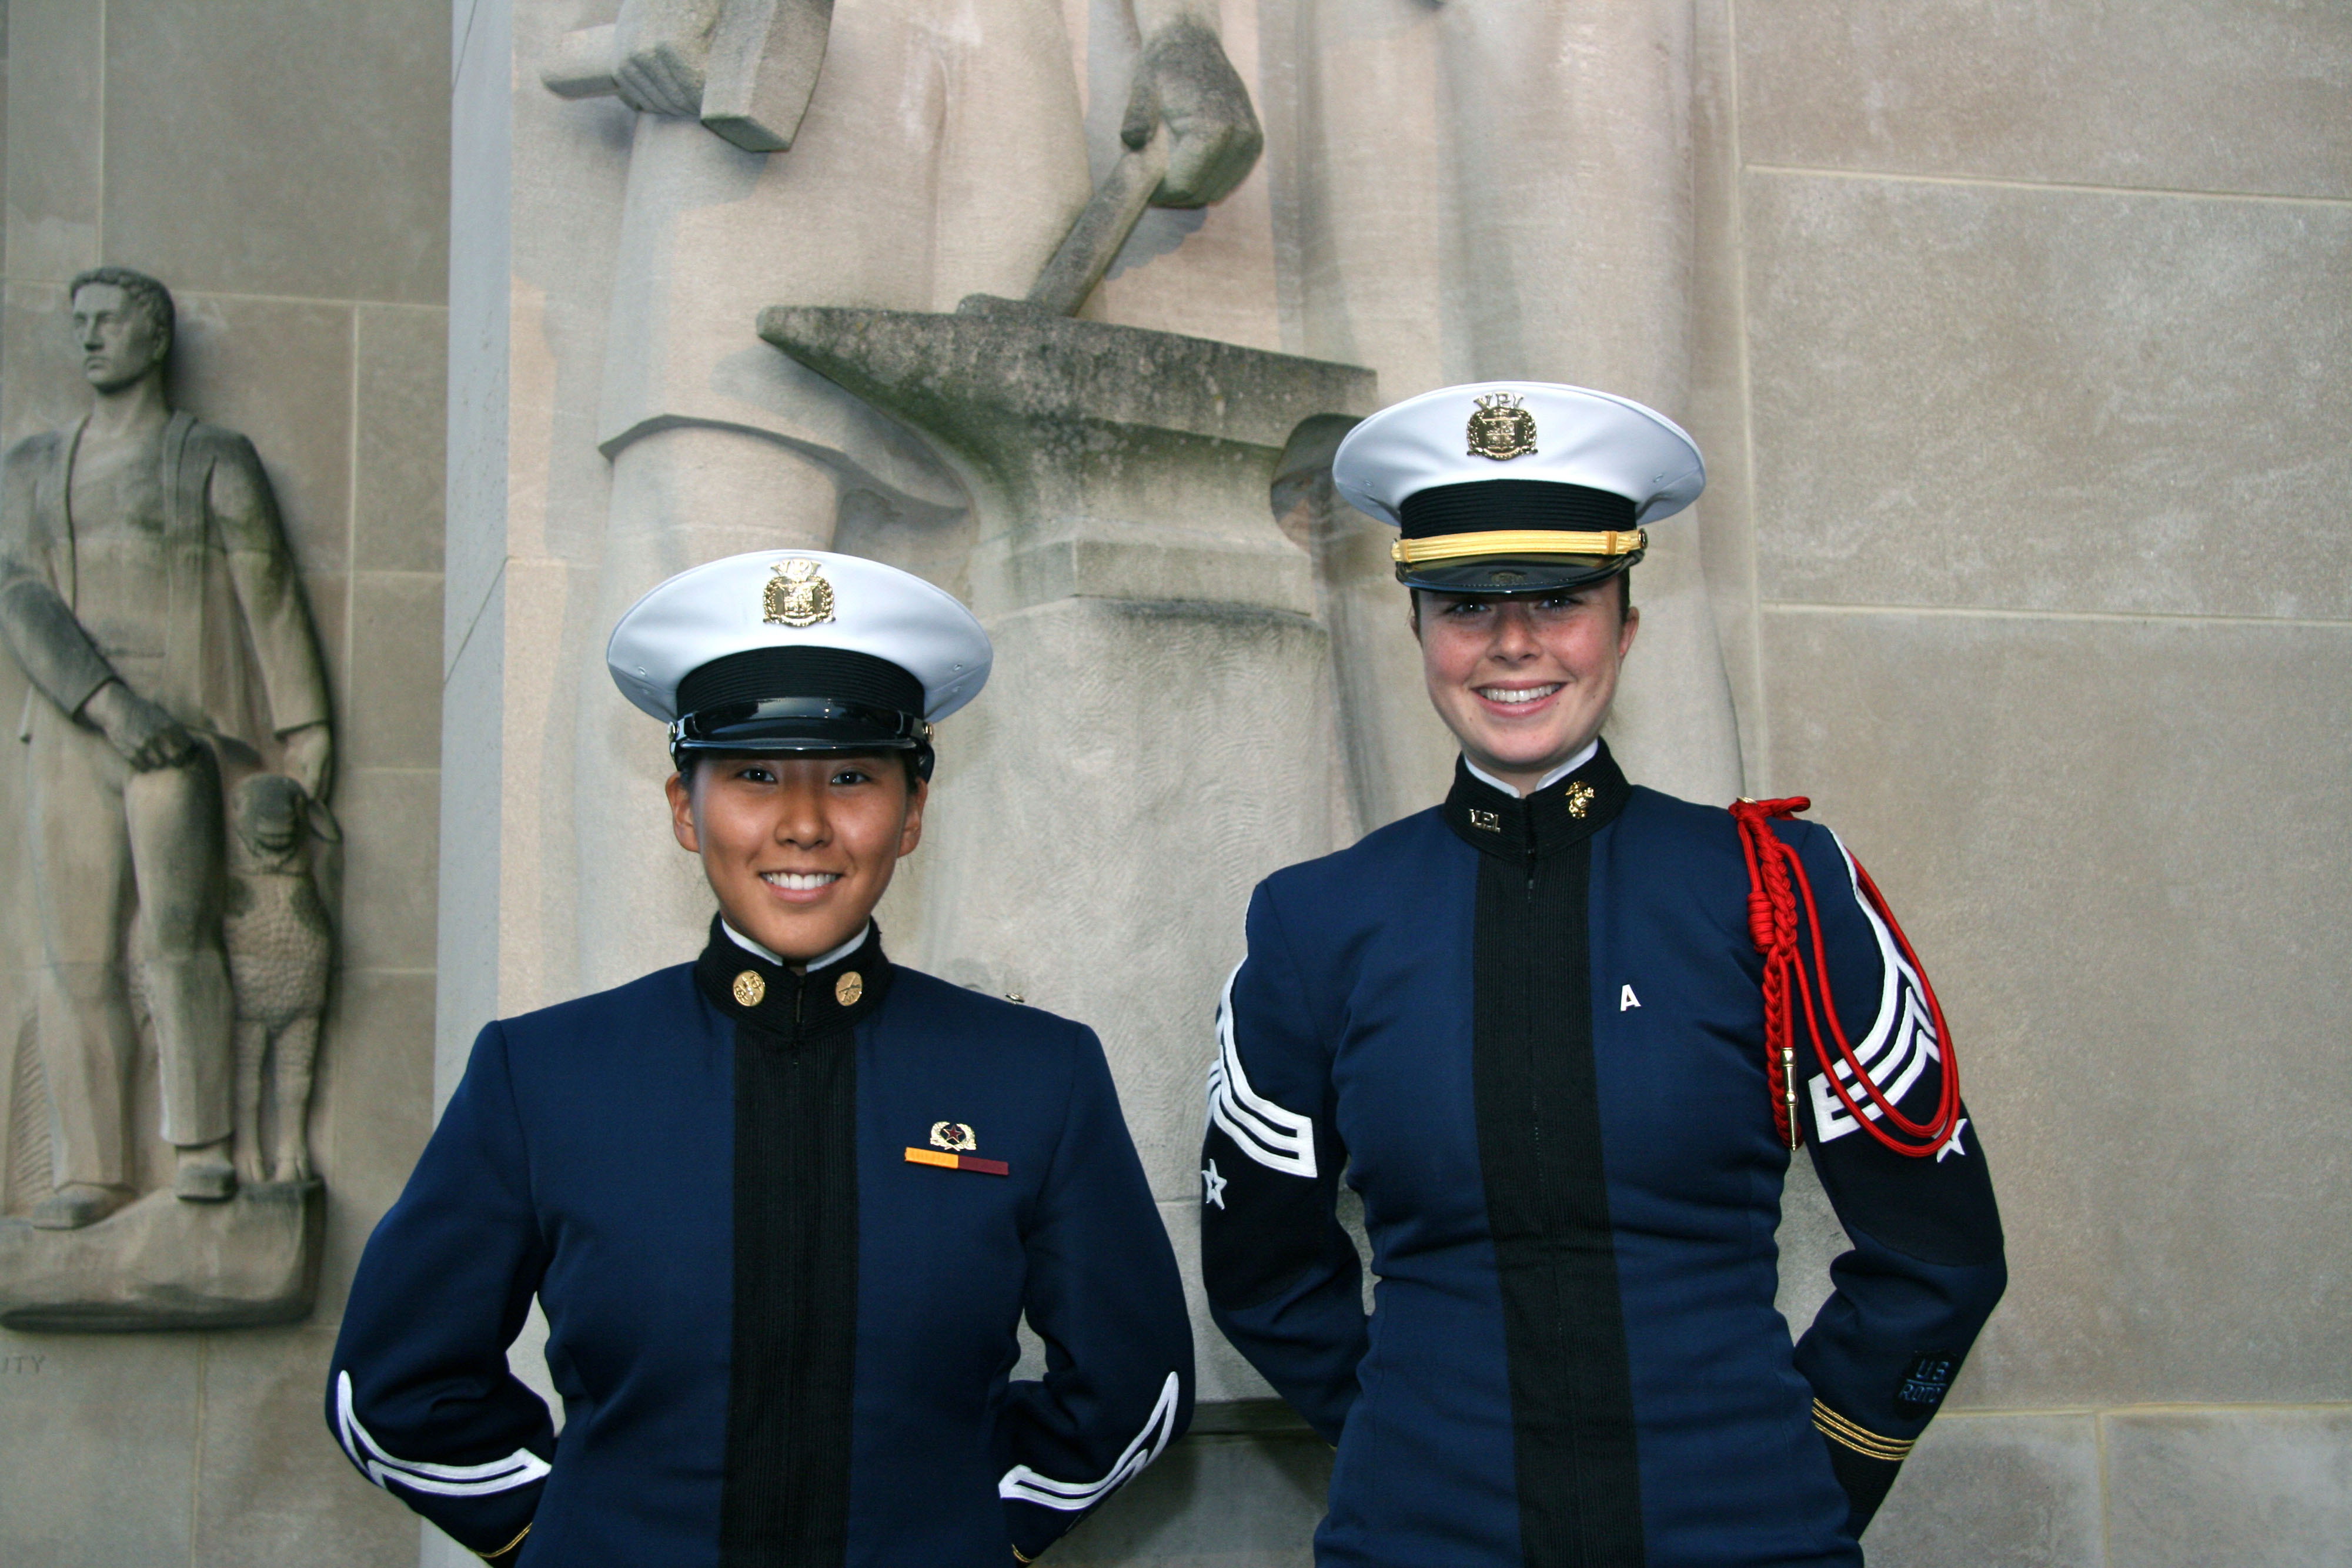 From left to right are Cadets Lydia Choi and Christina Devereux